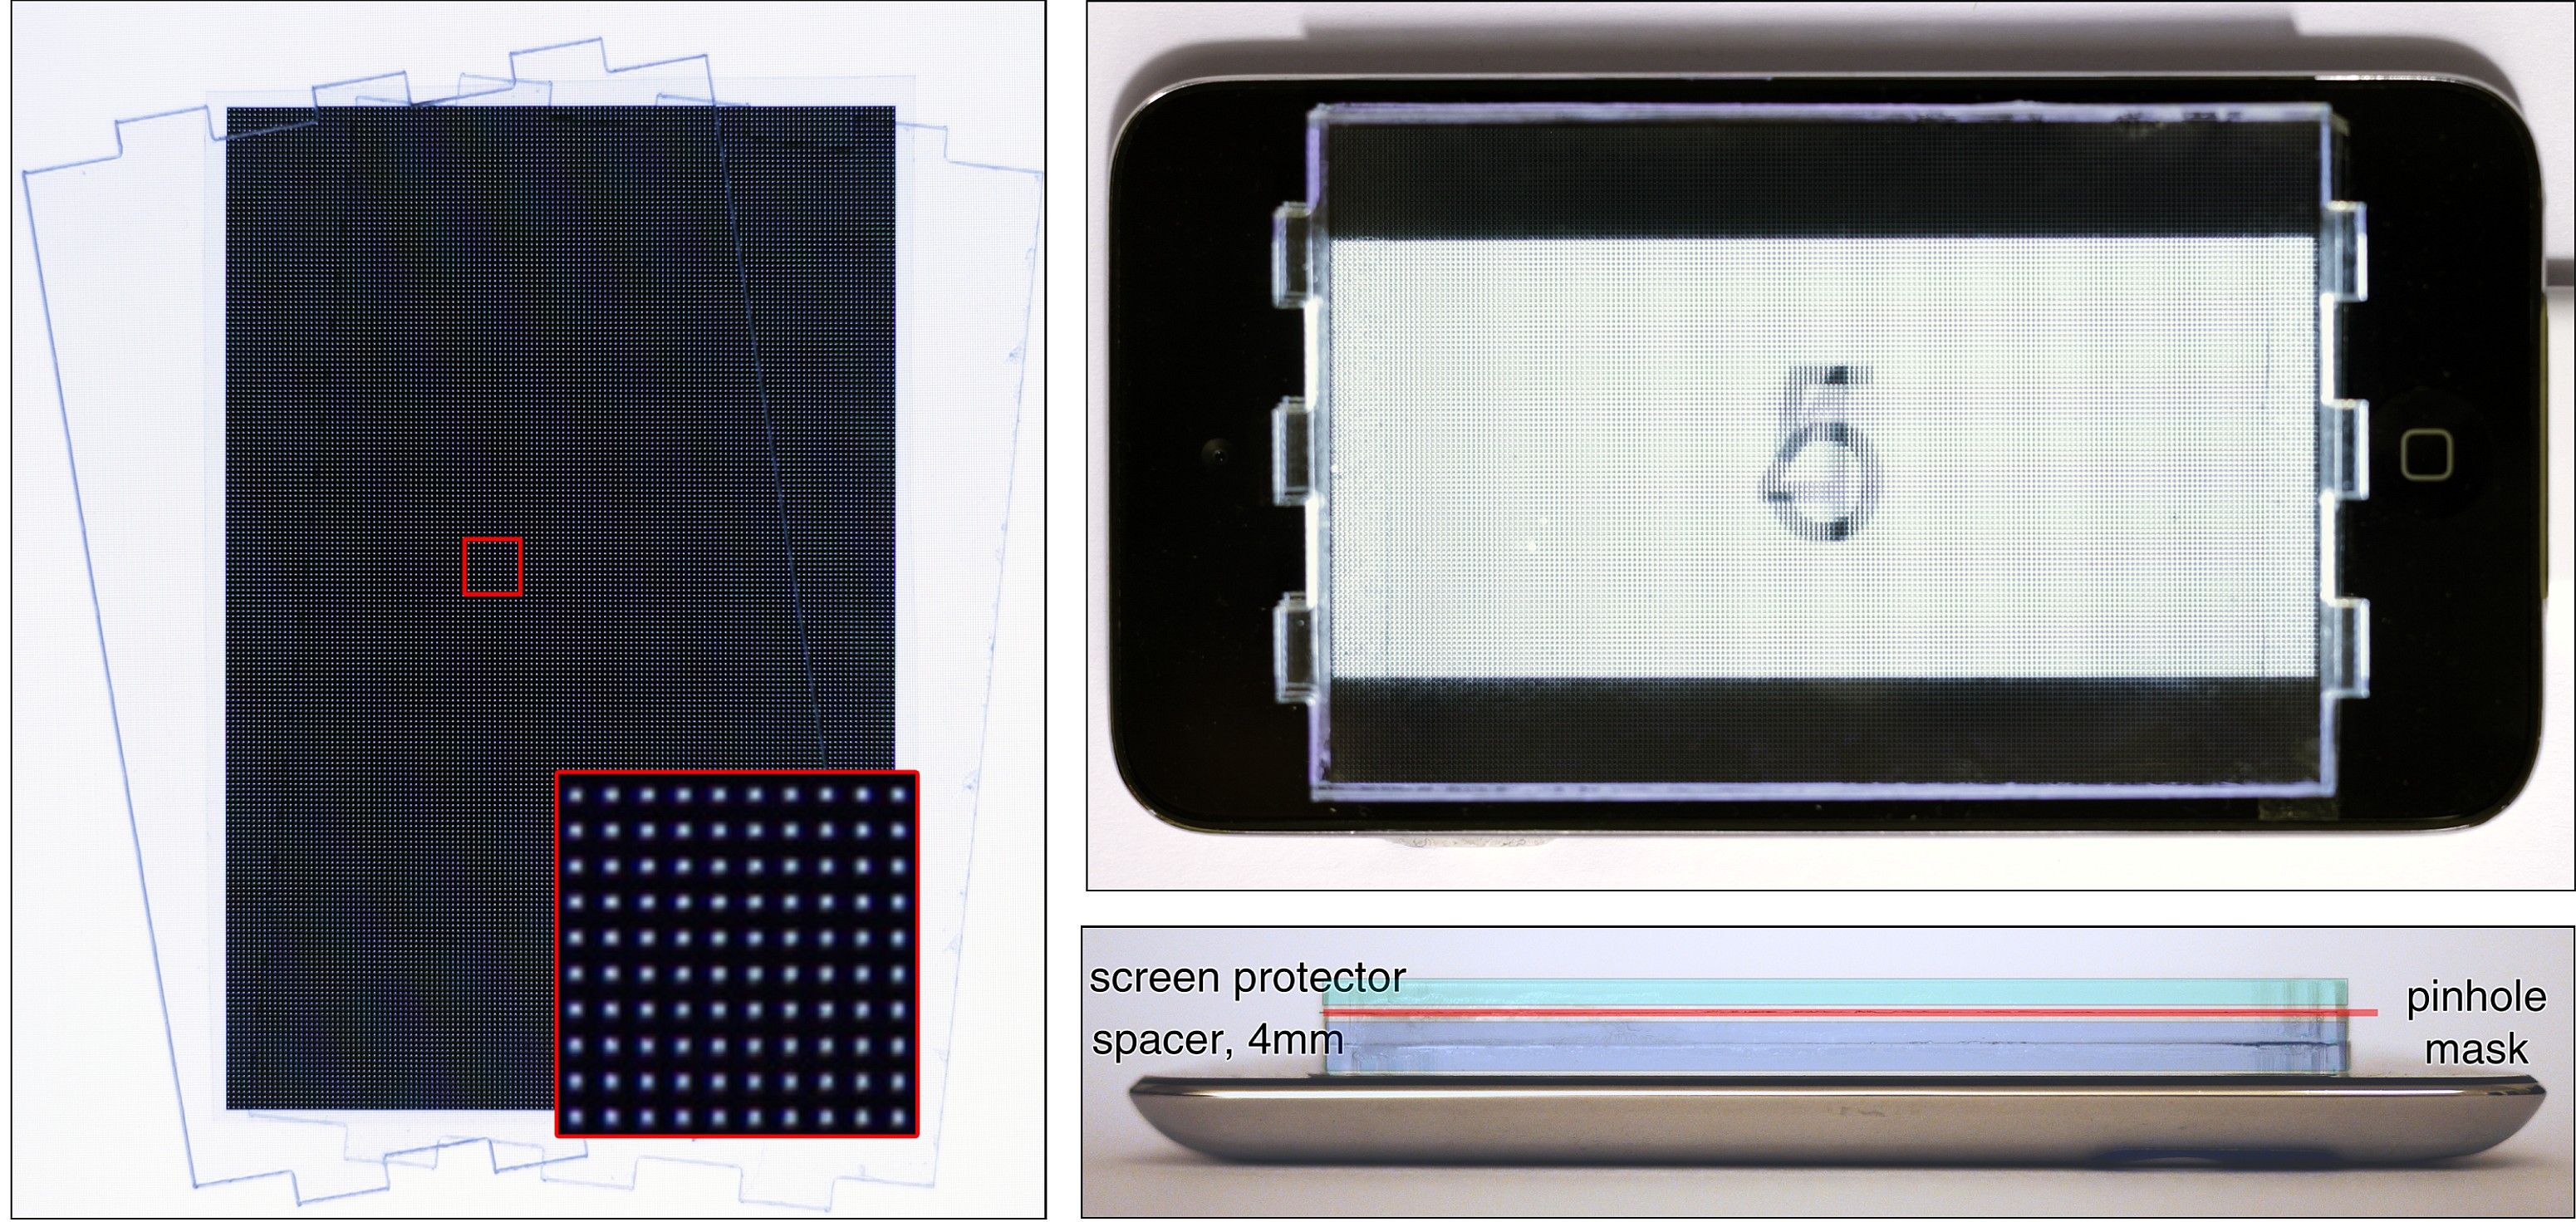 Prototype display. We construct an aberration-correcting display using parallax barriers. The barrier mask contains a pinhole array (left) that is mounted at a slight offset in front of an Apple iPod touch 4 screen (lower right). The display emits a light field with a high-enough angular resolution so that at least two views enter the pupil of a human observer. This effect is illustrated on the top right: multiple Arabic numerals are emitted in different viewing directions; the finite pupil size then creates an average of multiple different views on the retina (here simulated with a camera).